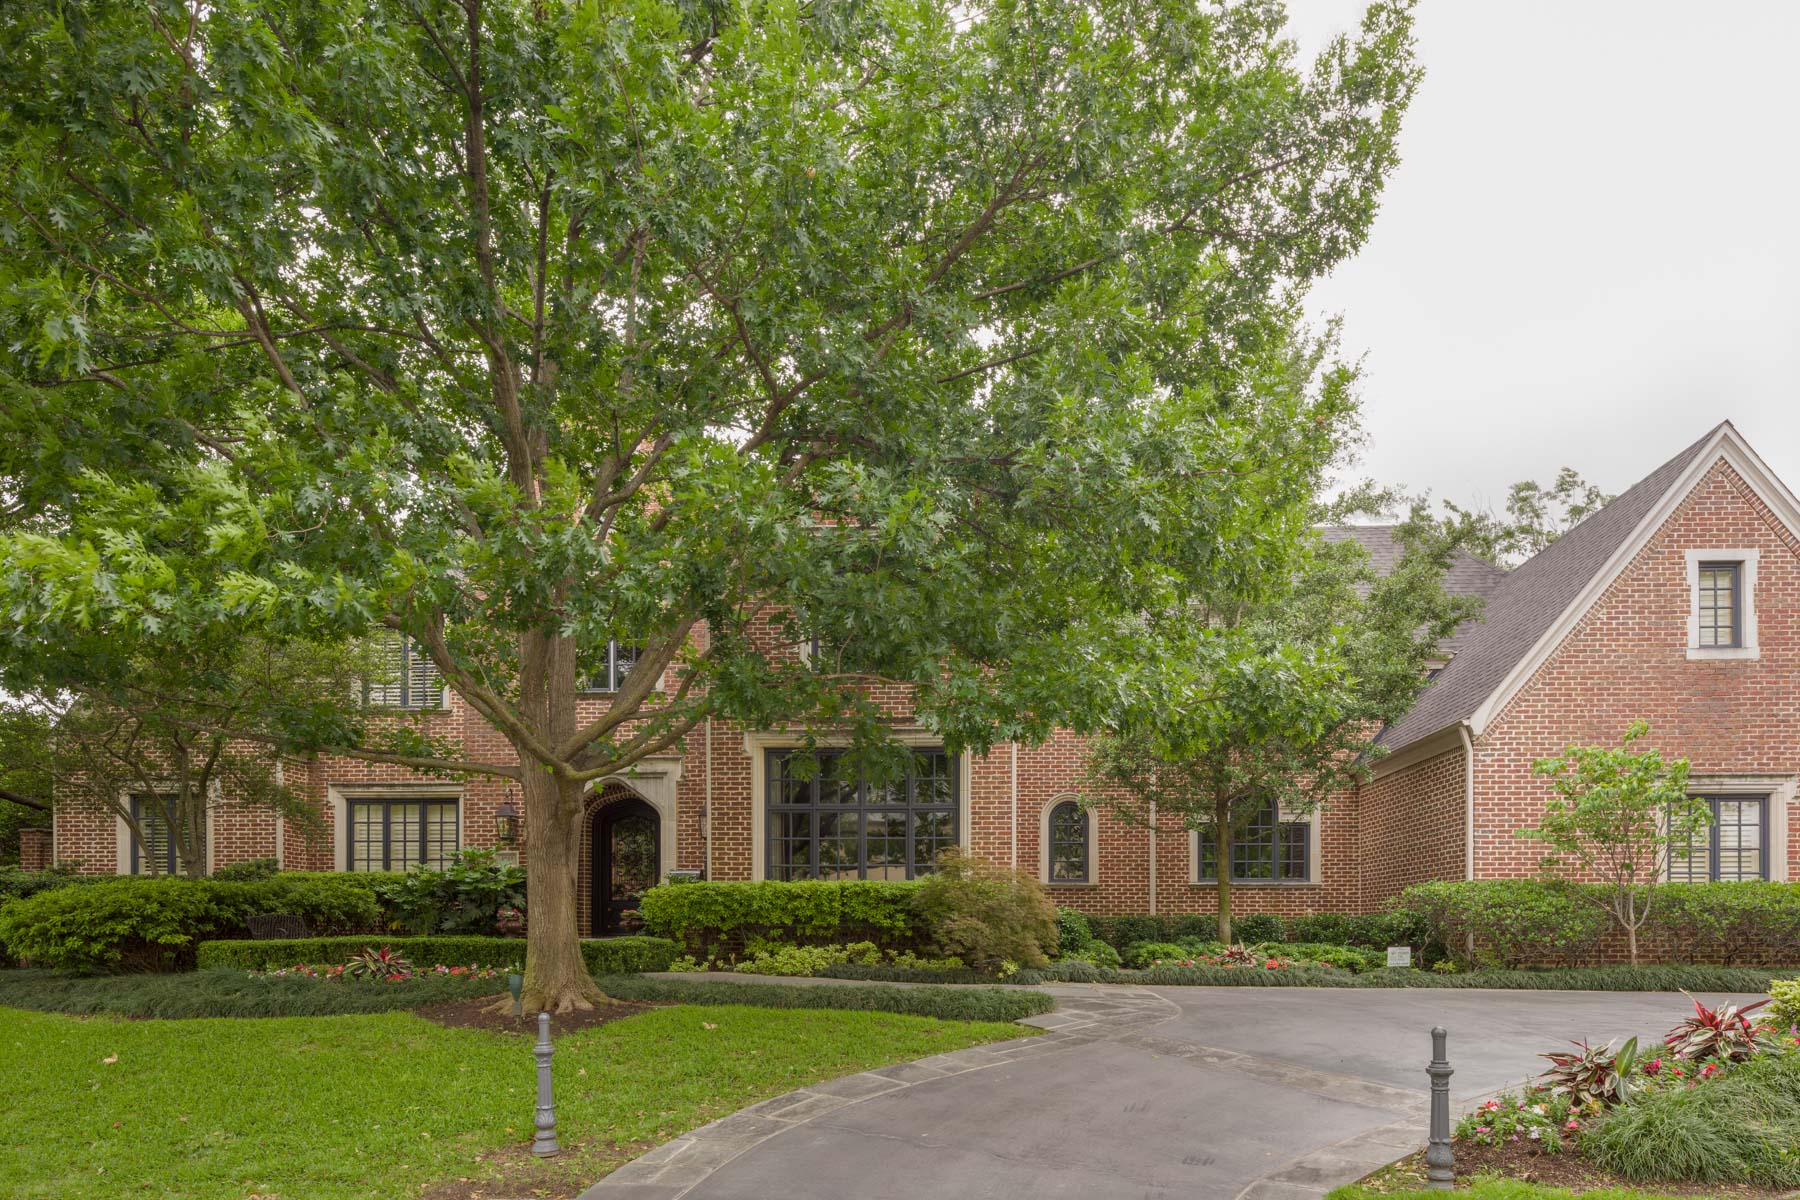 Single Family Home for Sale at Coveted University Park Location 4001 Normandy Ave Dallas, Texas, 75205 United States